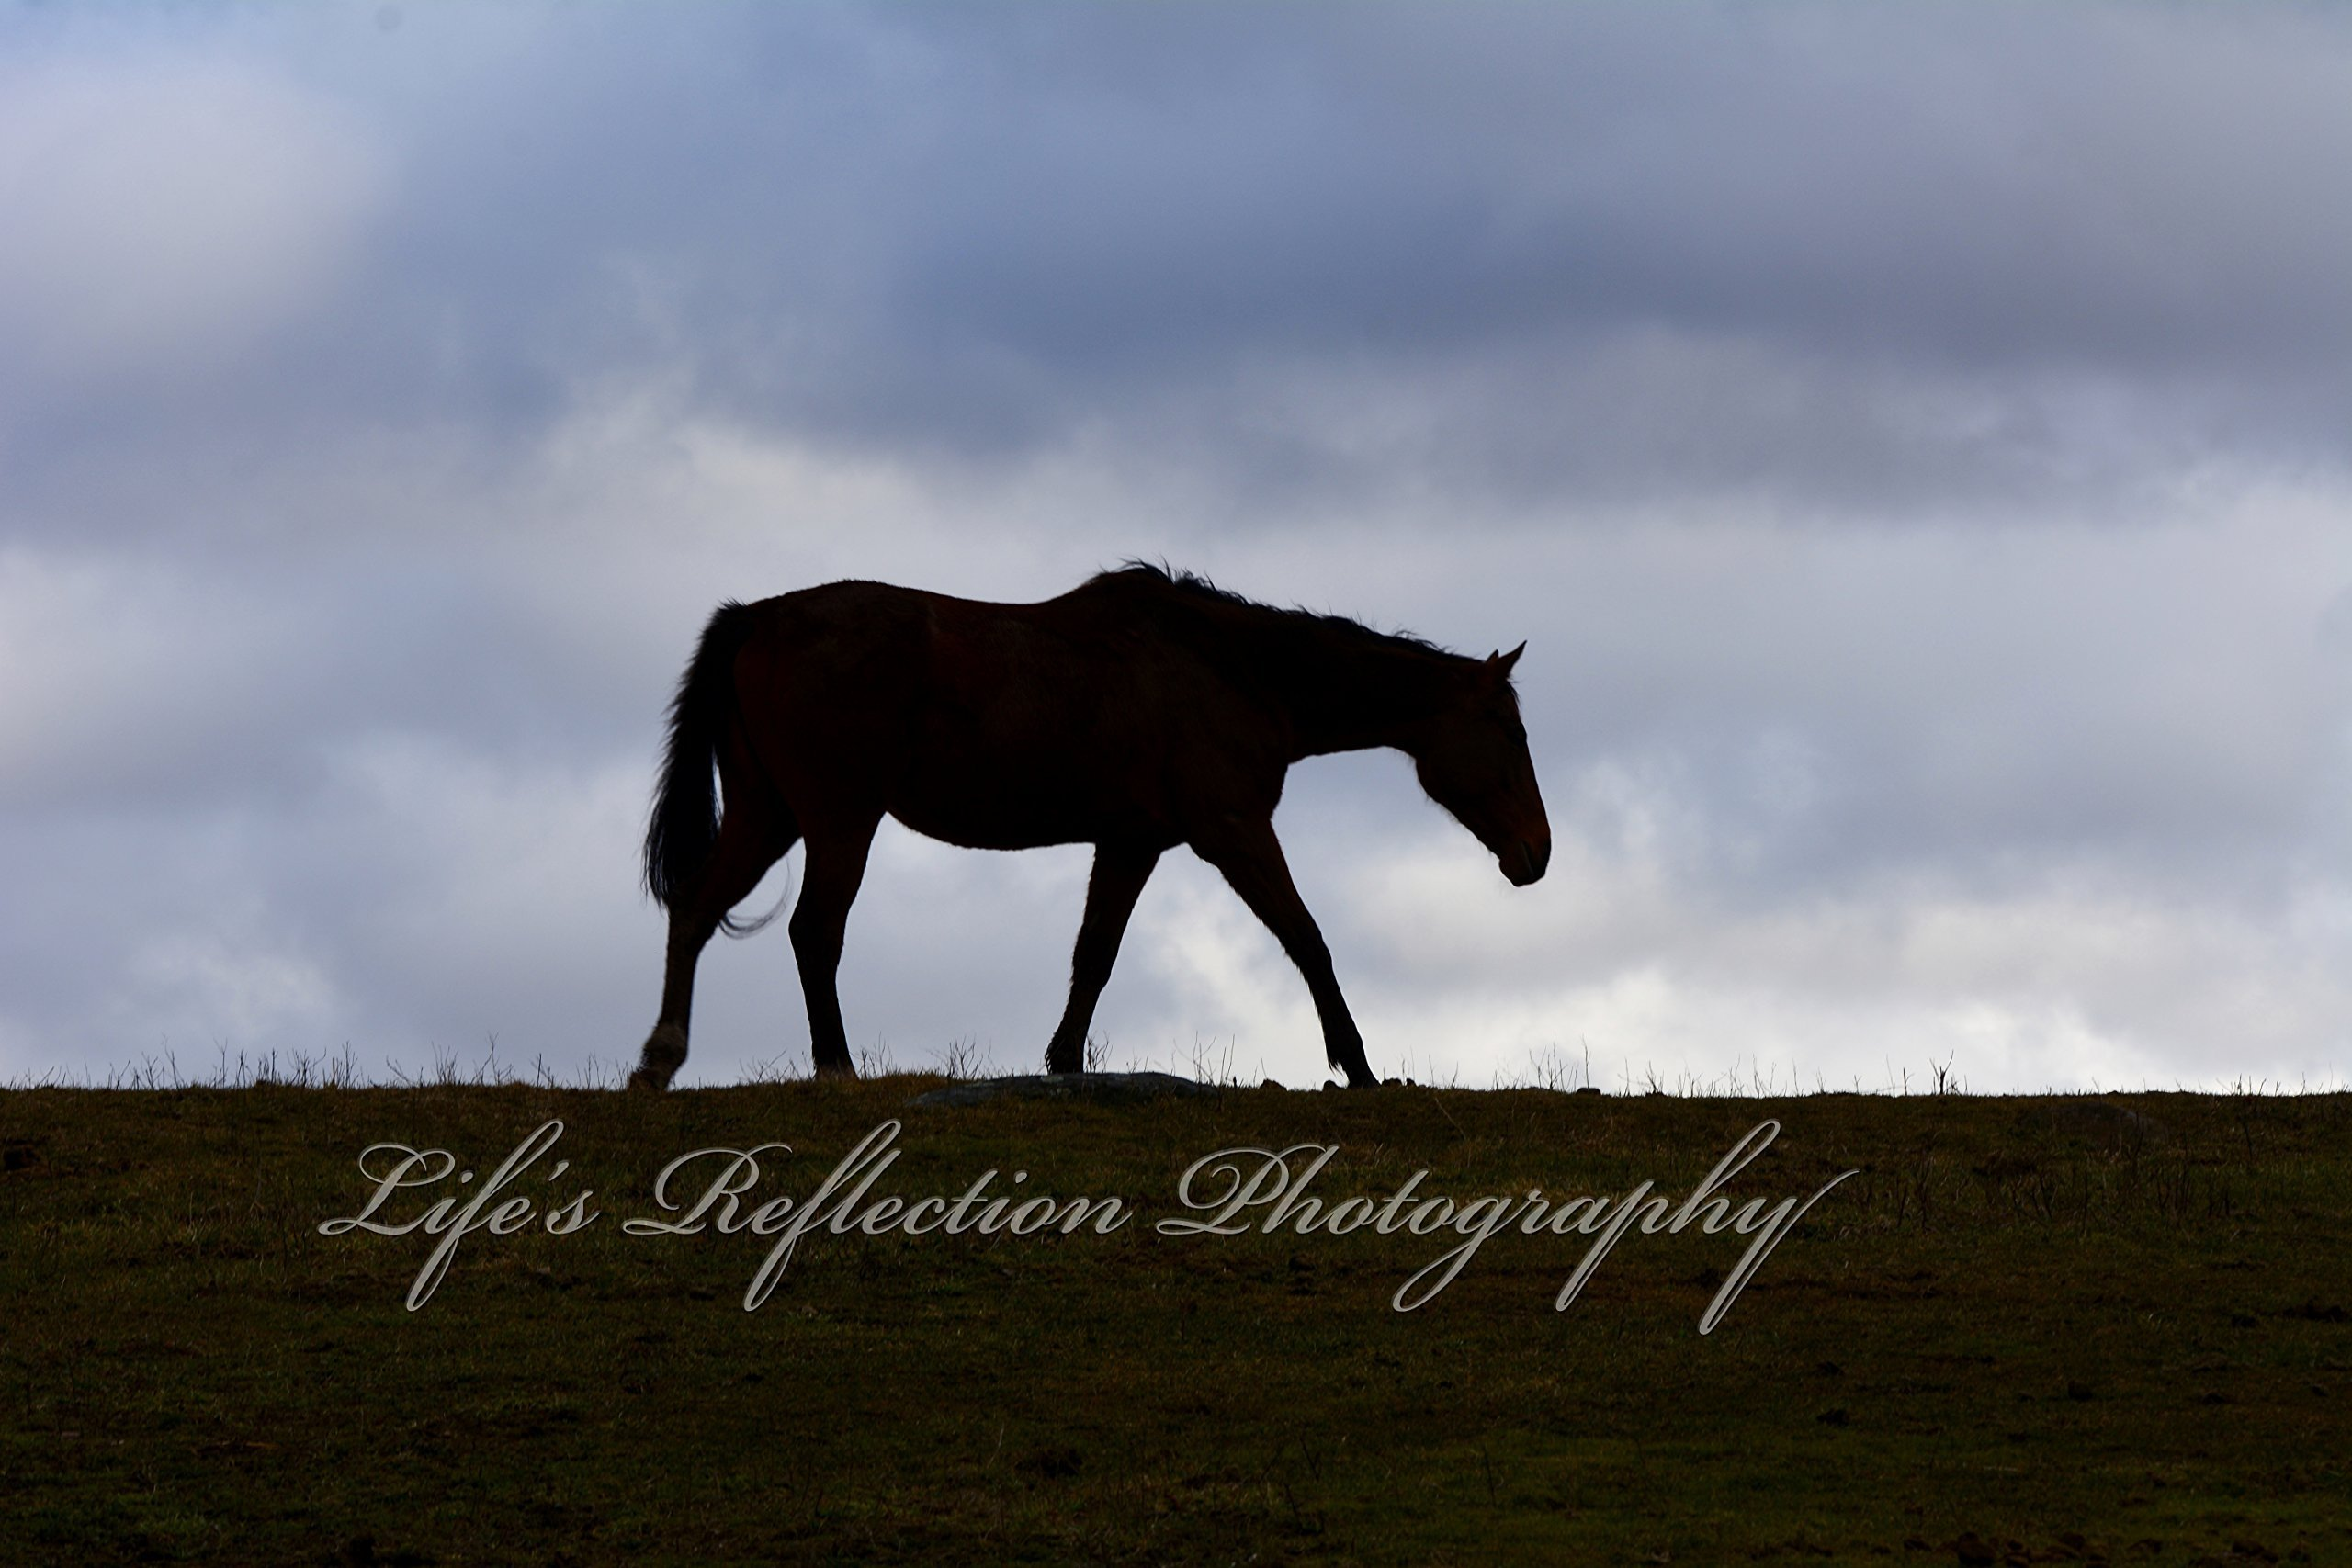 Wildlife Photography, Landscape Photography, Silhouette Photography, Wall Decor, Fine Art, Horse Photography, Horse Photography, Sizes from 5x7 to 20x30